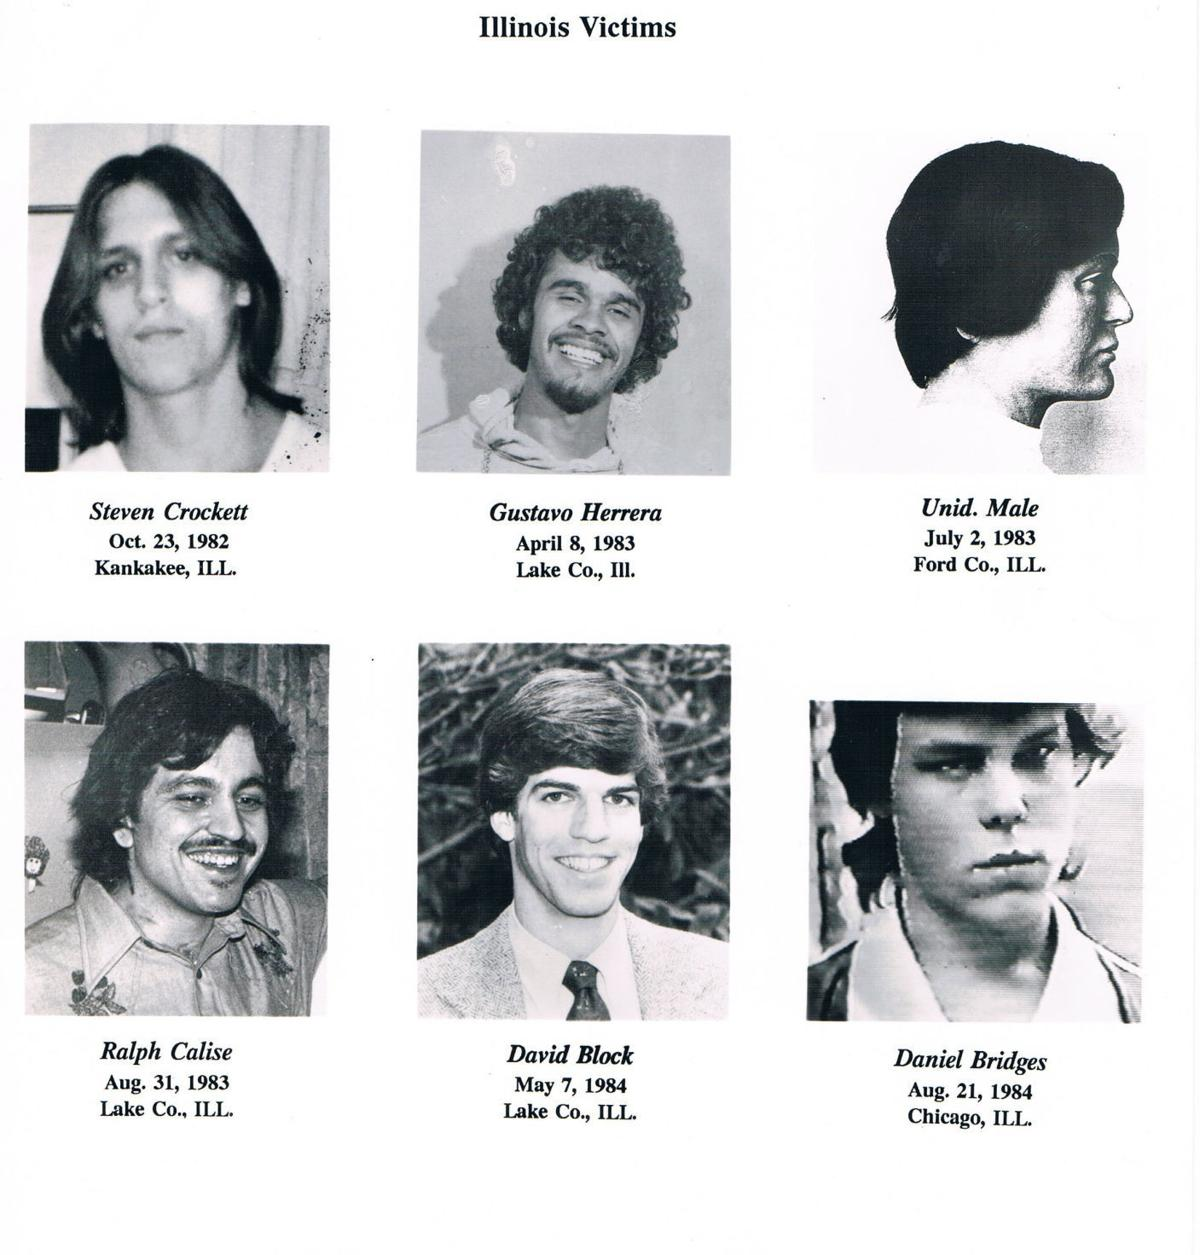 Illinois victims